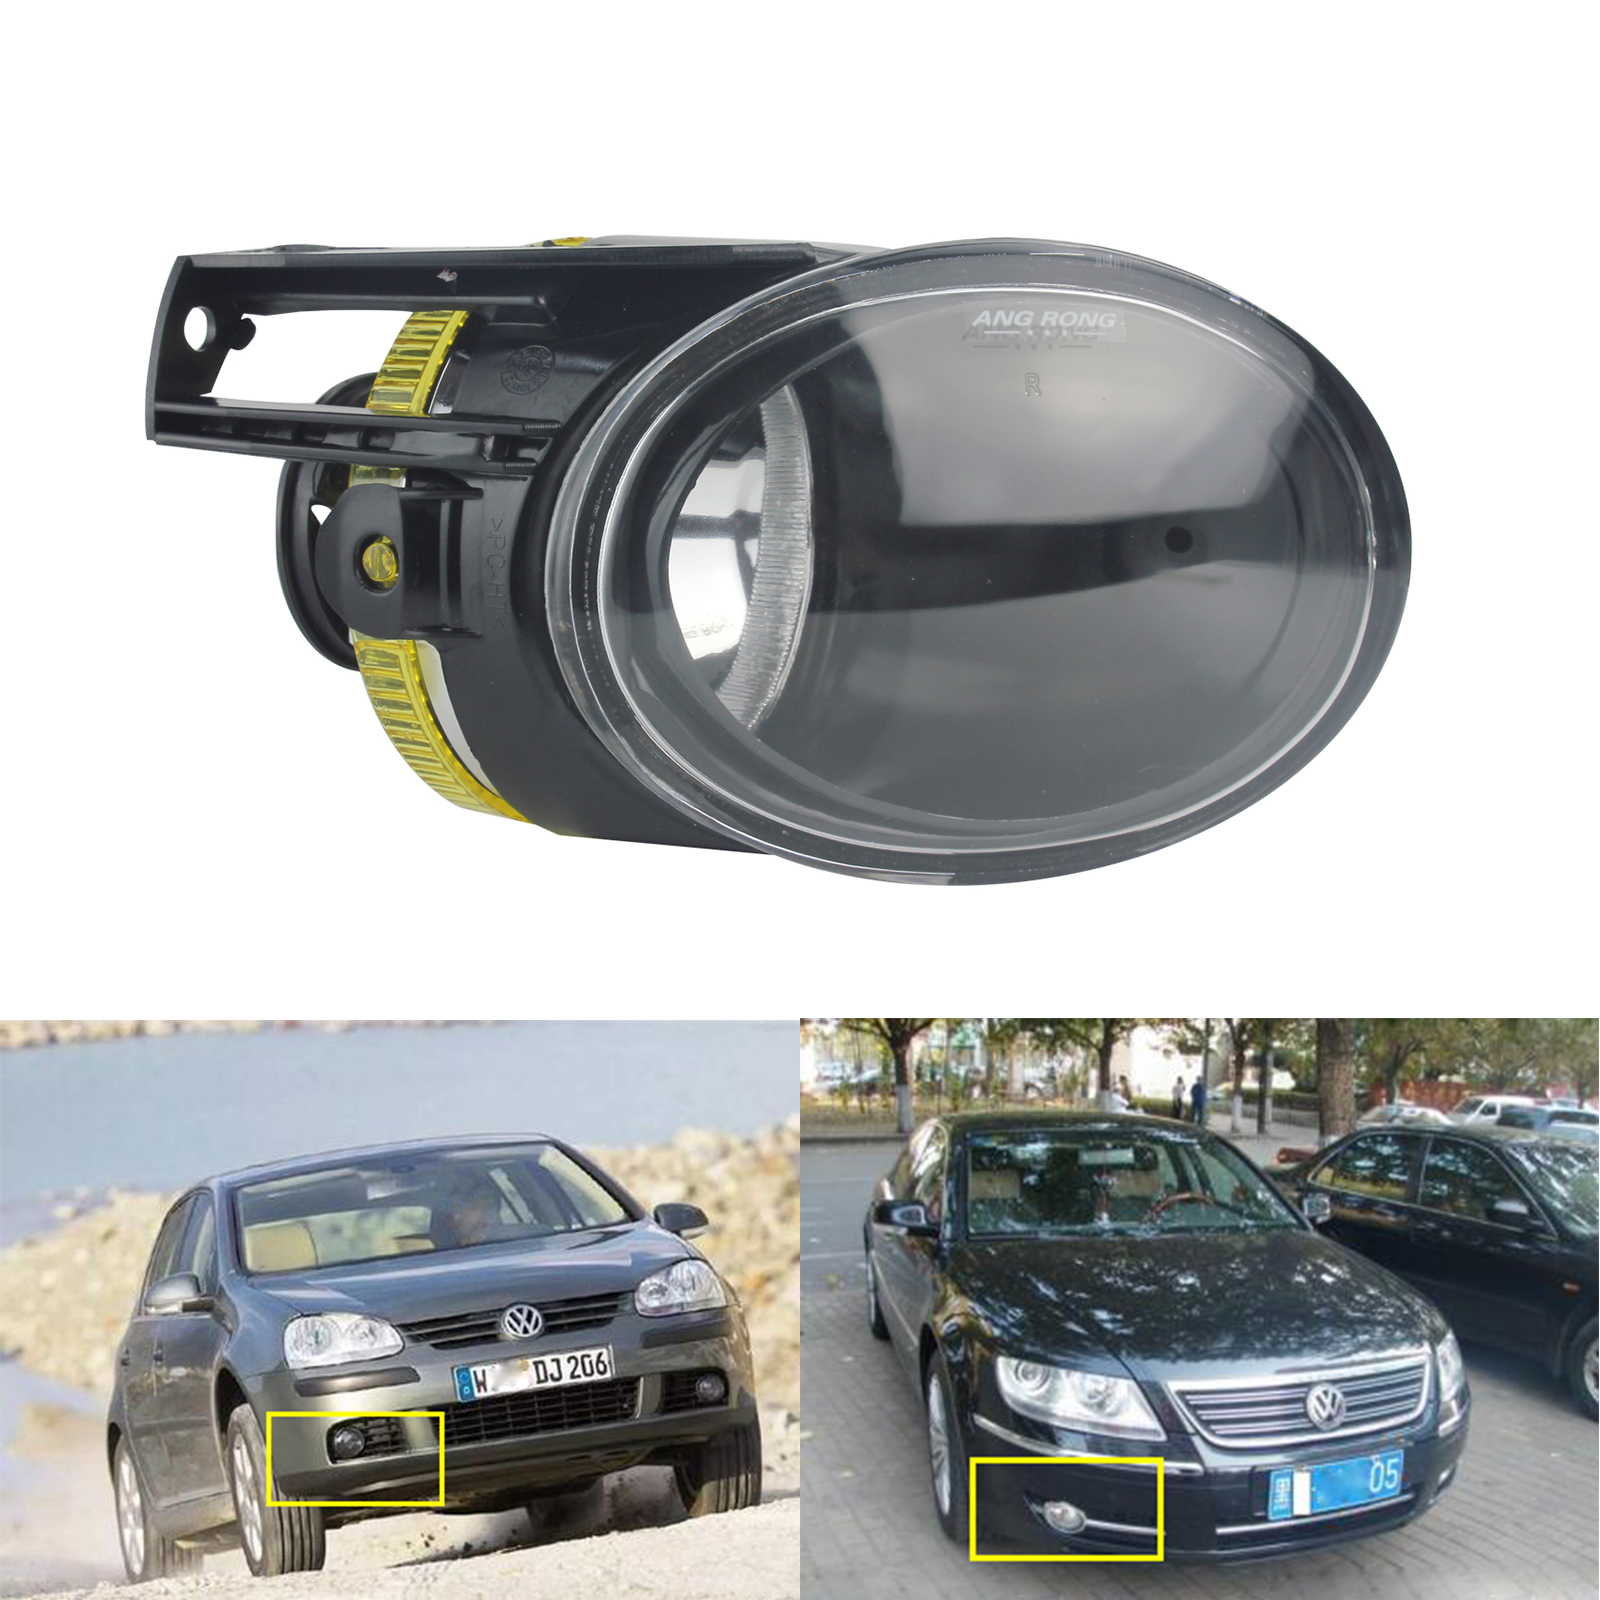 ANGRONG For VW Passat 3C B6 2006-2010 Front Fog Light Lamp DRL Right Driver Side No Bulb стоимость